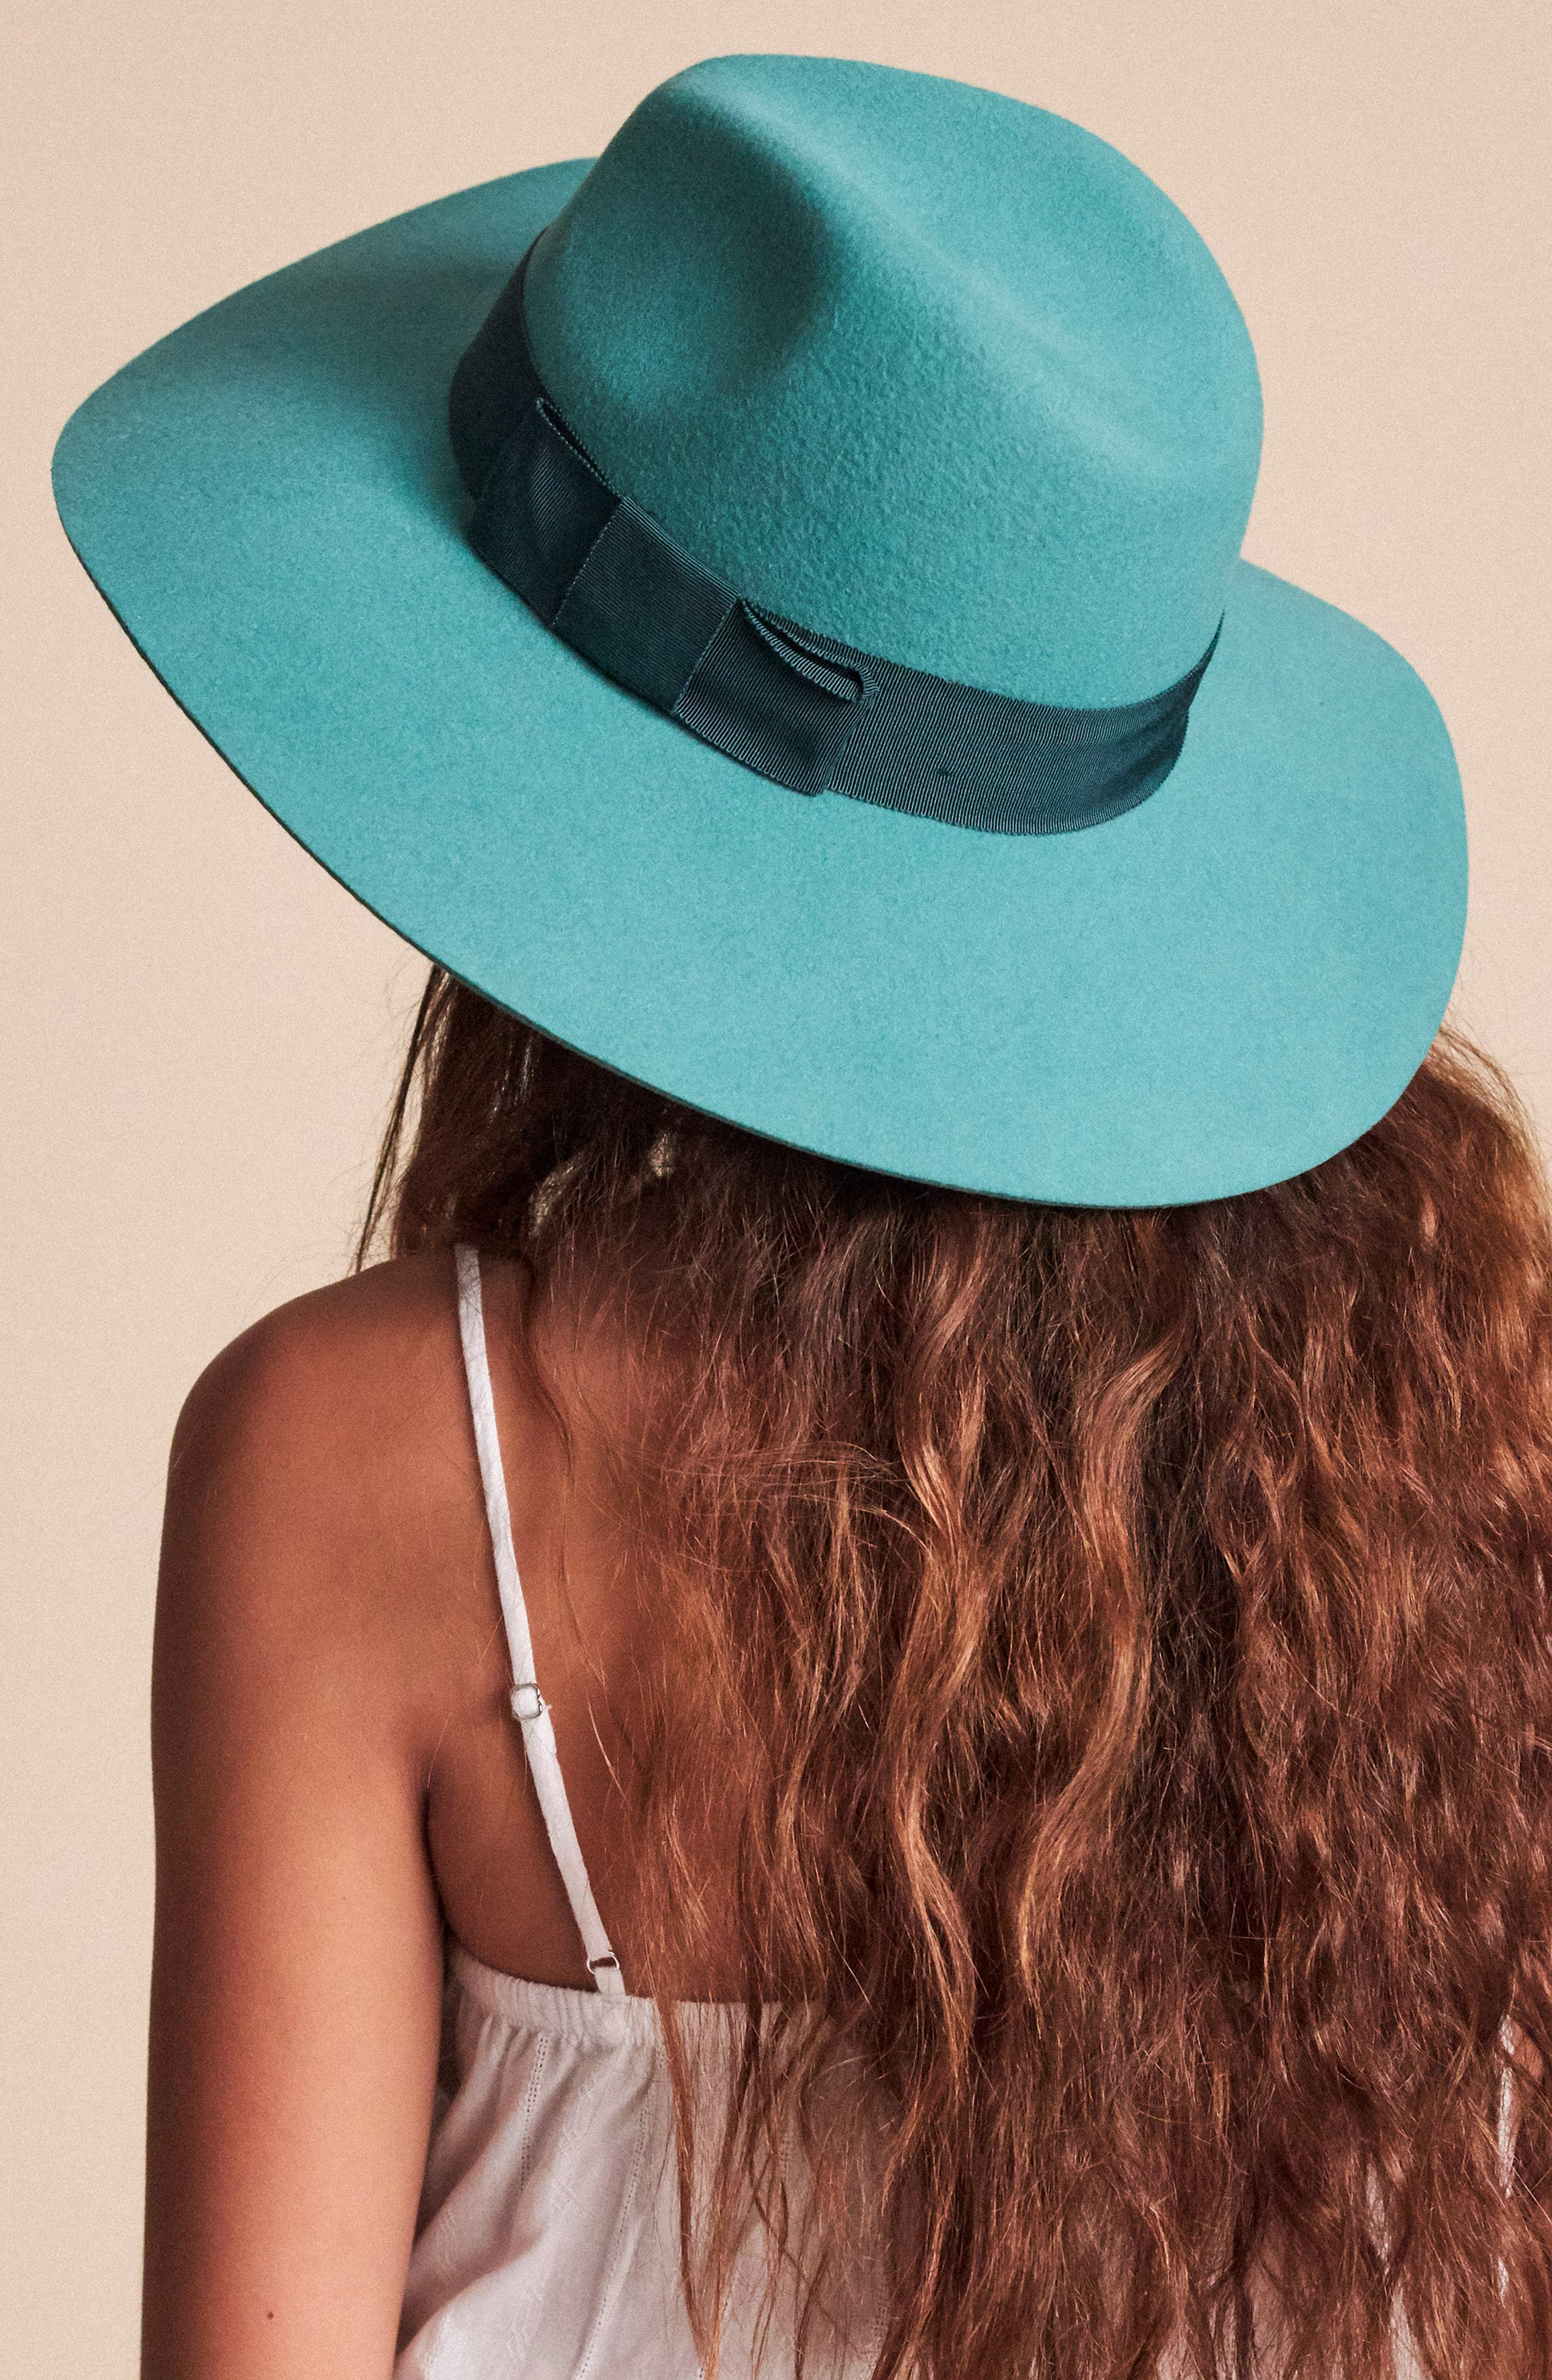 Brixton Slippers 'Piper' Floppy Wool Hat